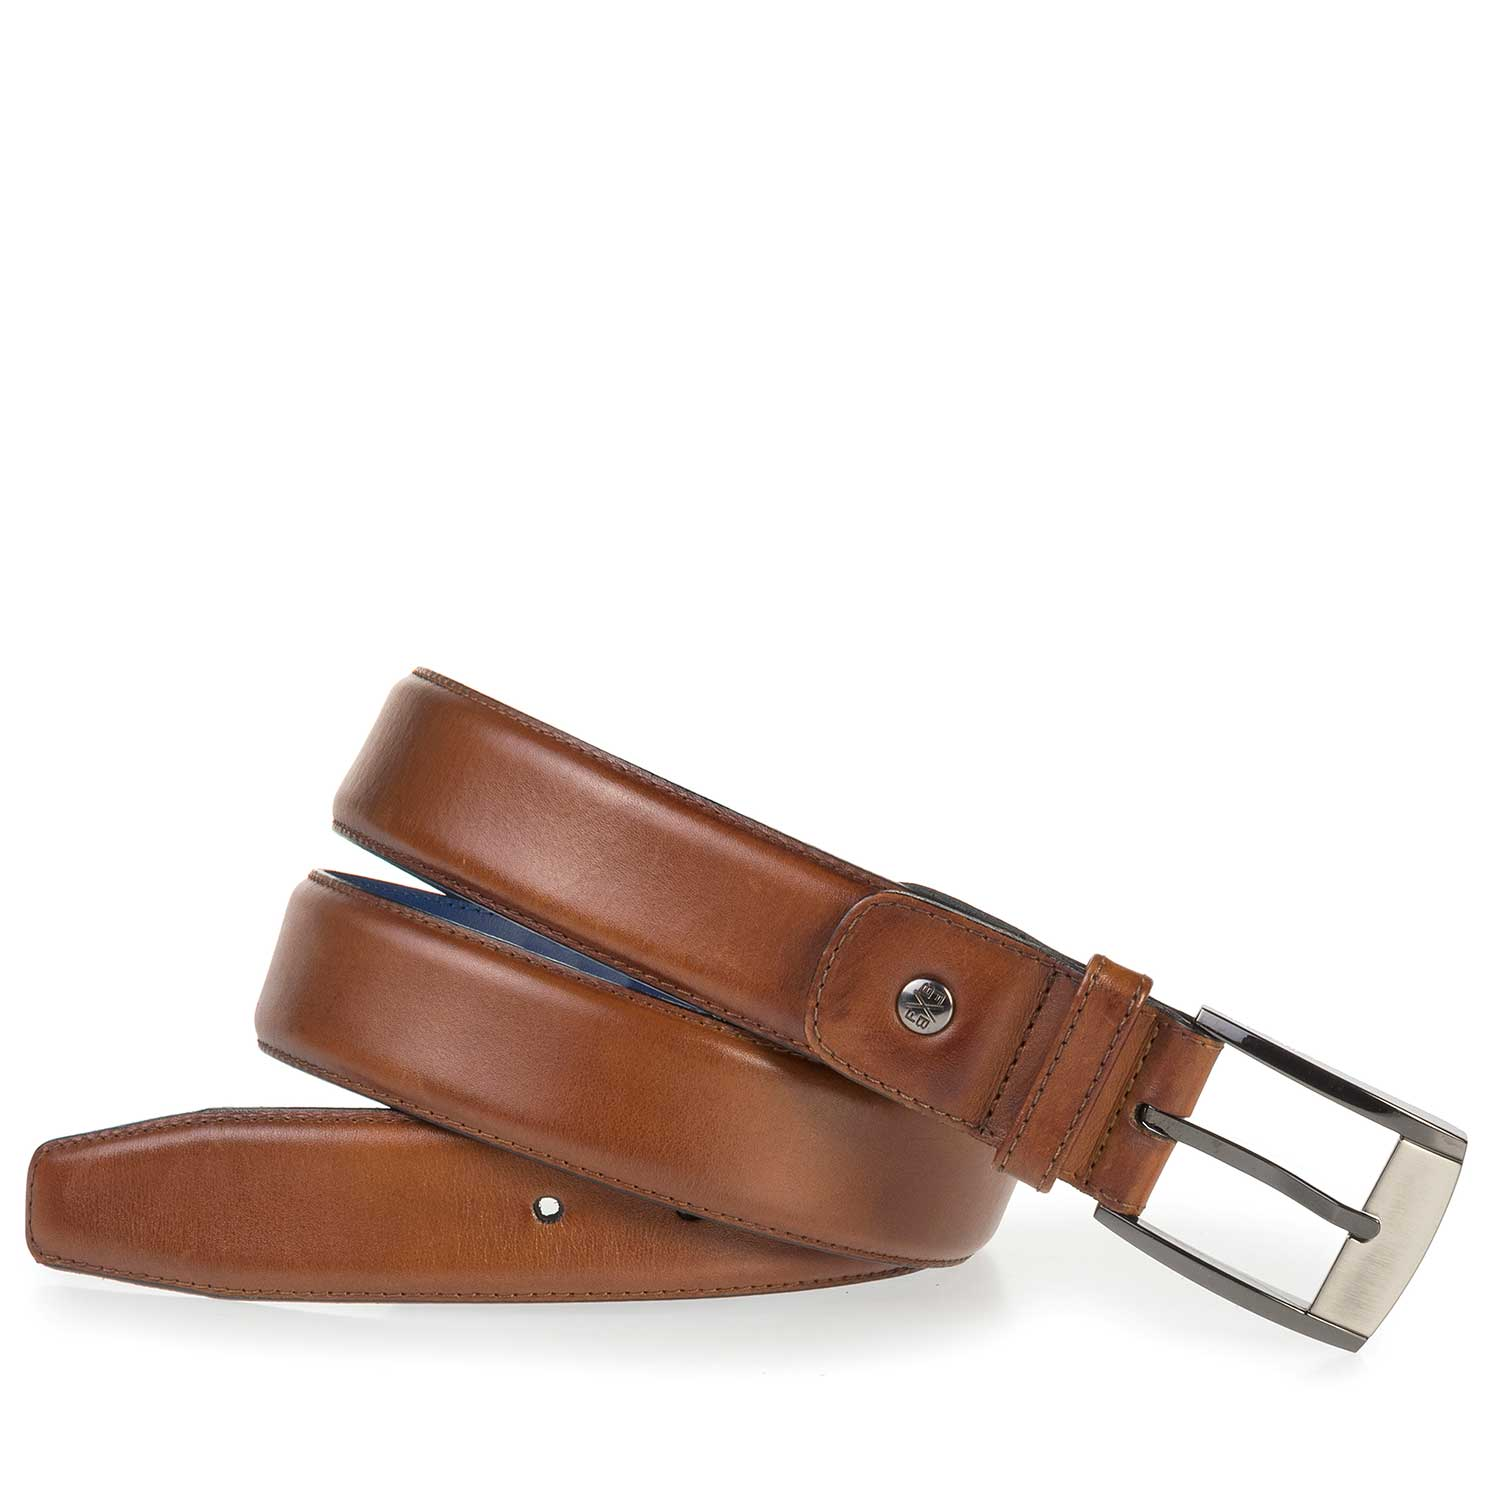 75183/09 - Cognac-colored calf leather belt